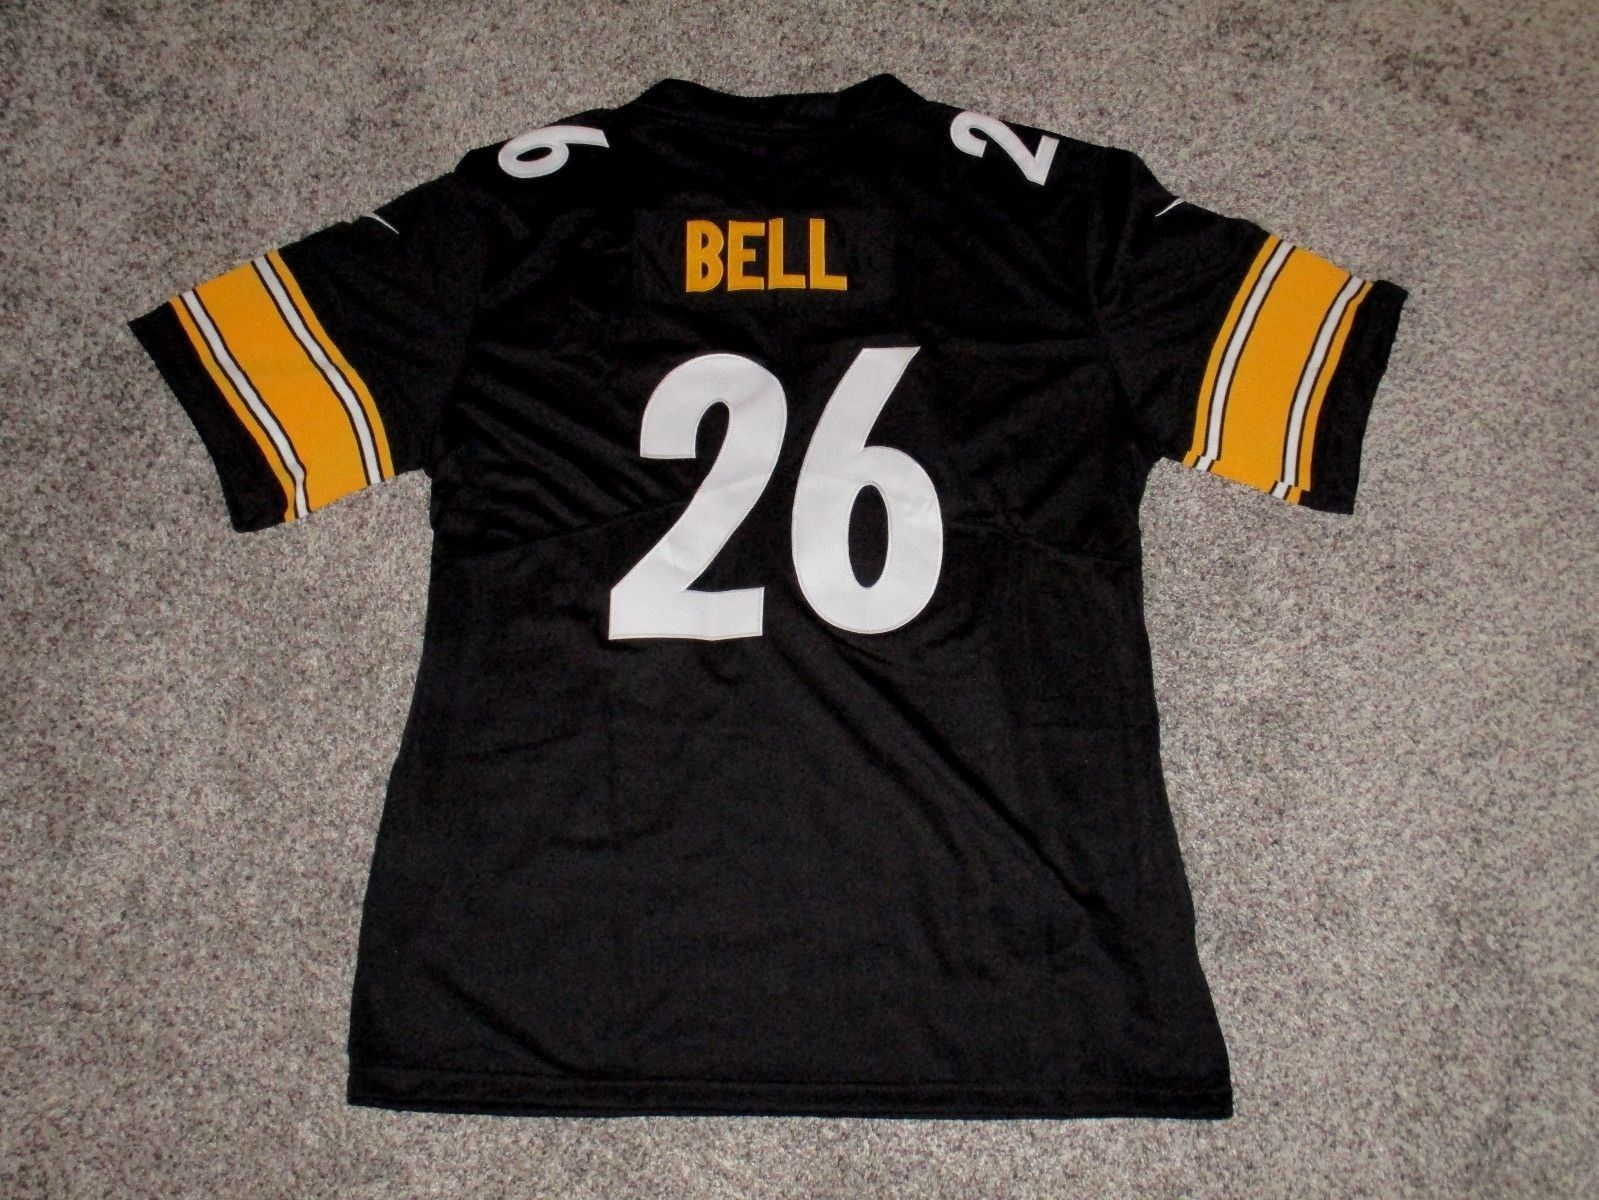 a62ff3960e8 S l1600. S l1600. Previous. LeVeon Bell Pittsburgh Steelers Authentic Jersey  by NIKE